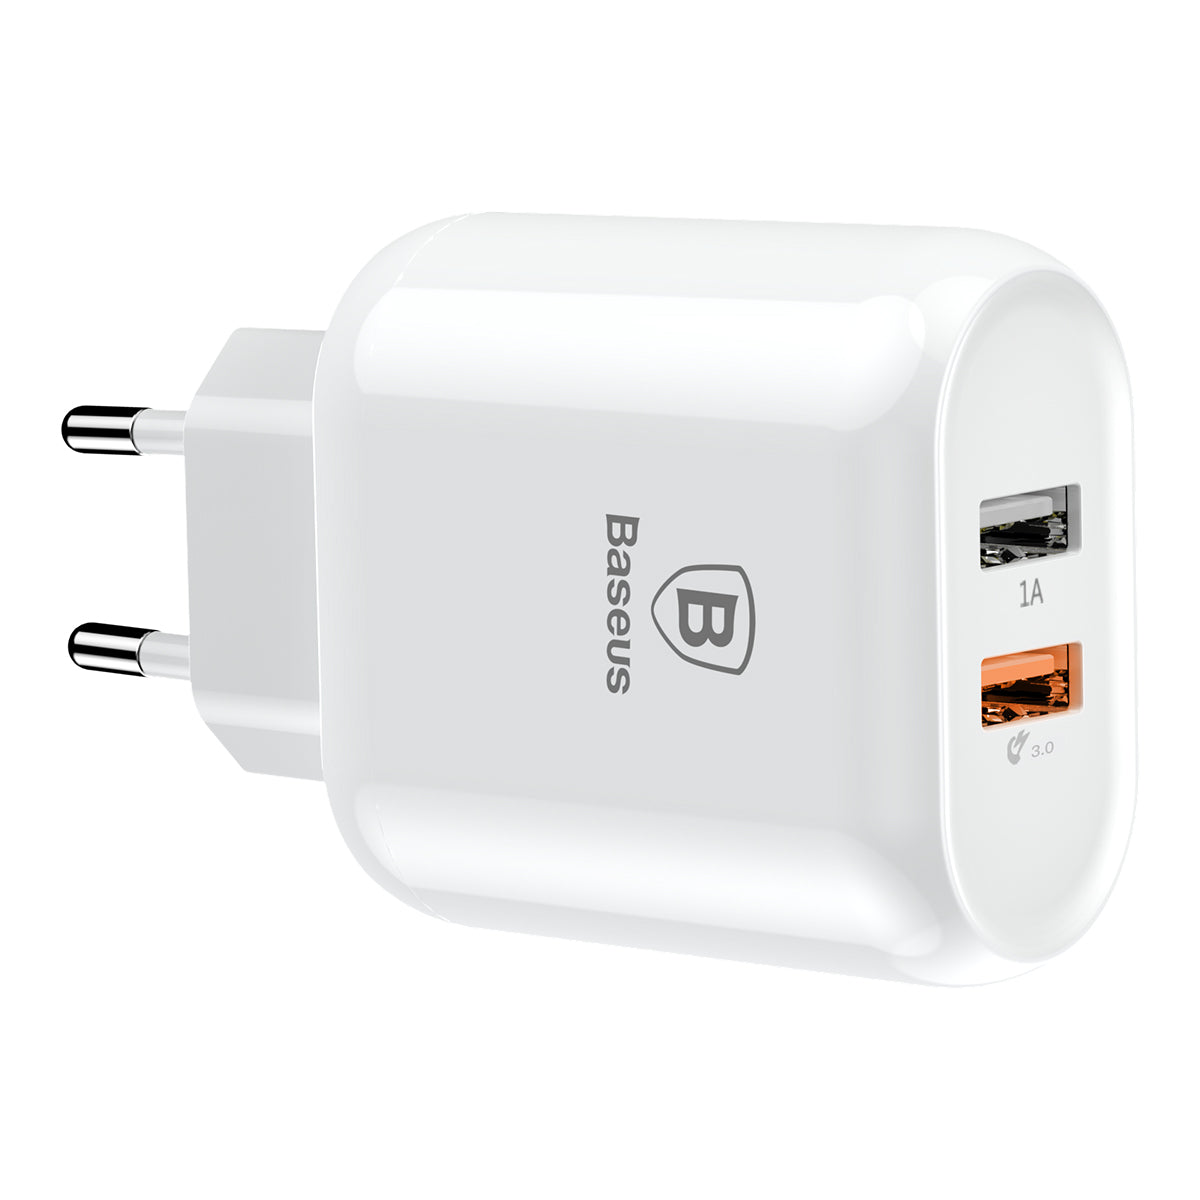 Bojure Series Dual-USB Quick Charge Wall Charger for EU (23W) | White | Baseus supertech.pk